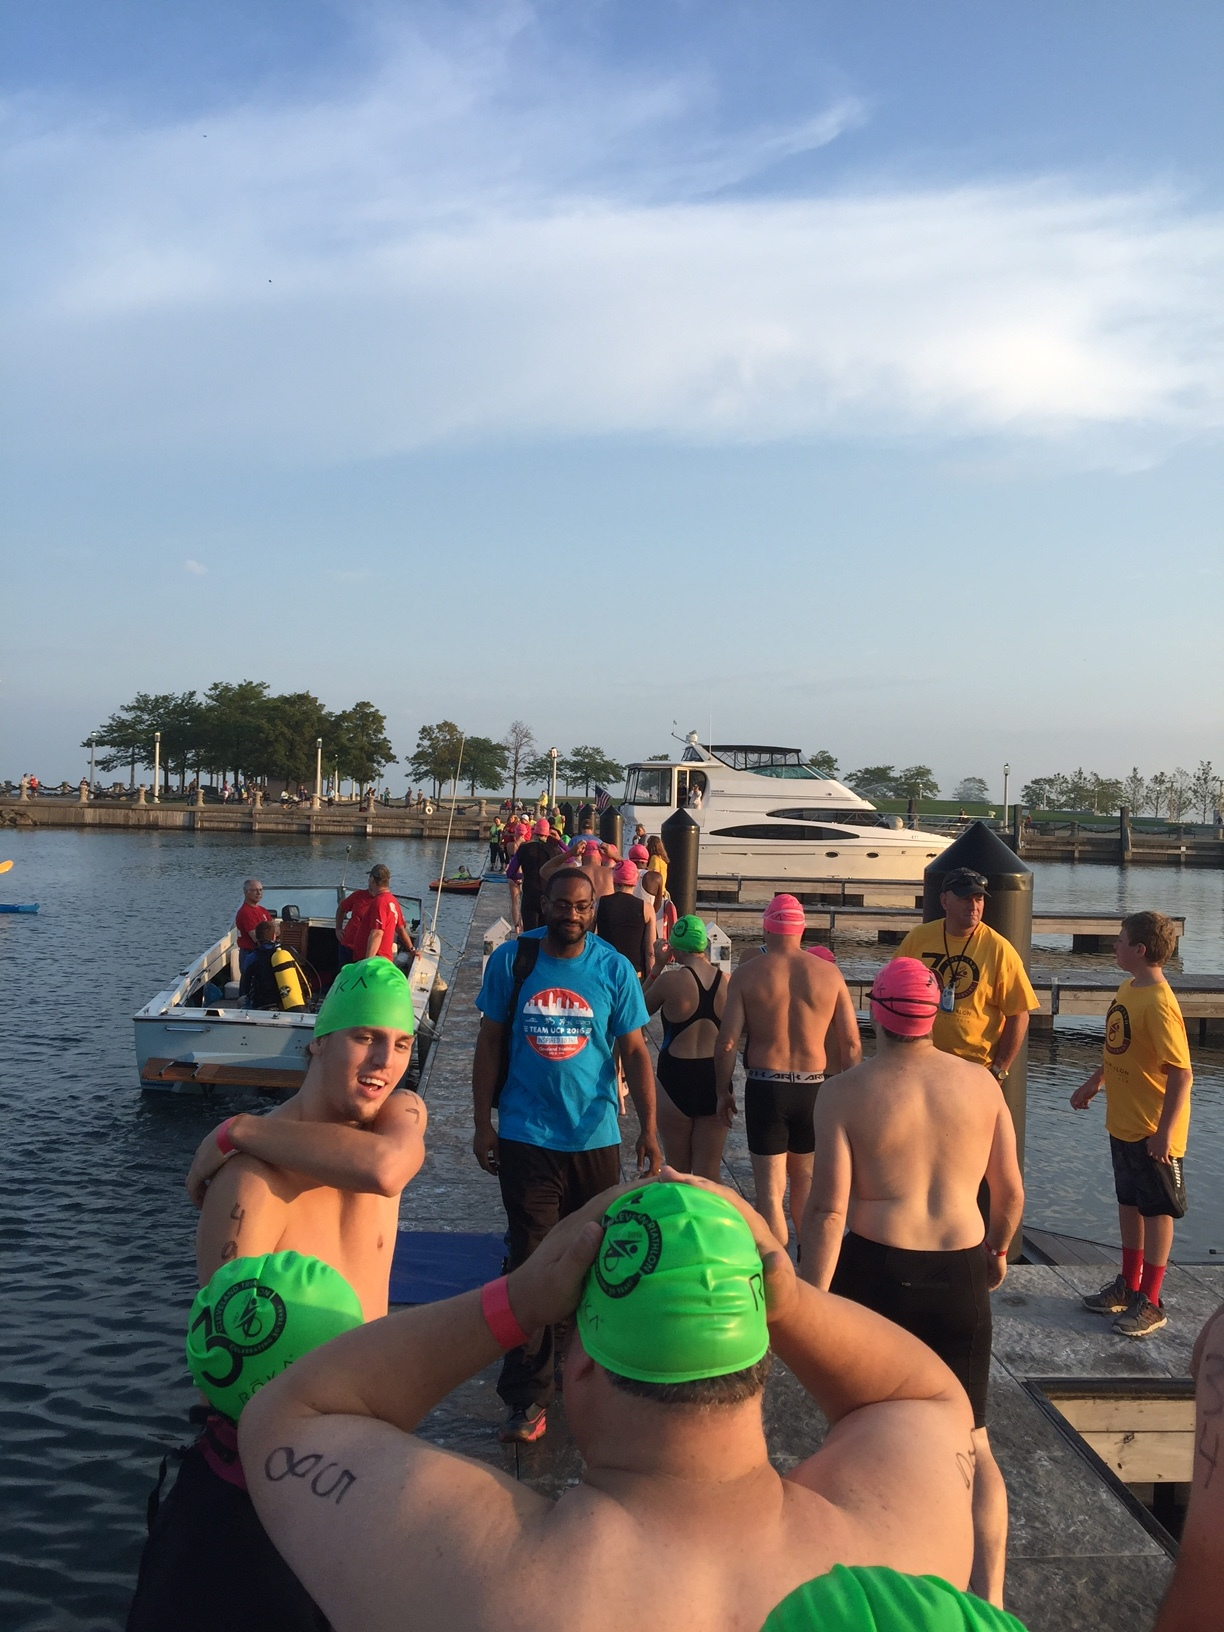 At the Marina prepping for the Swim